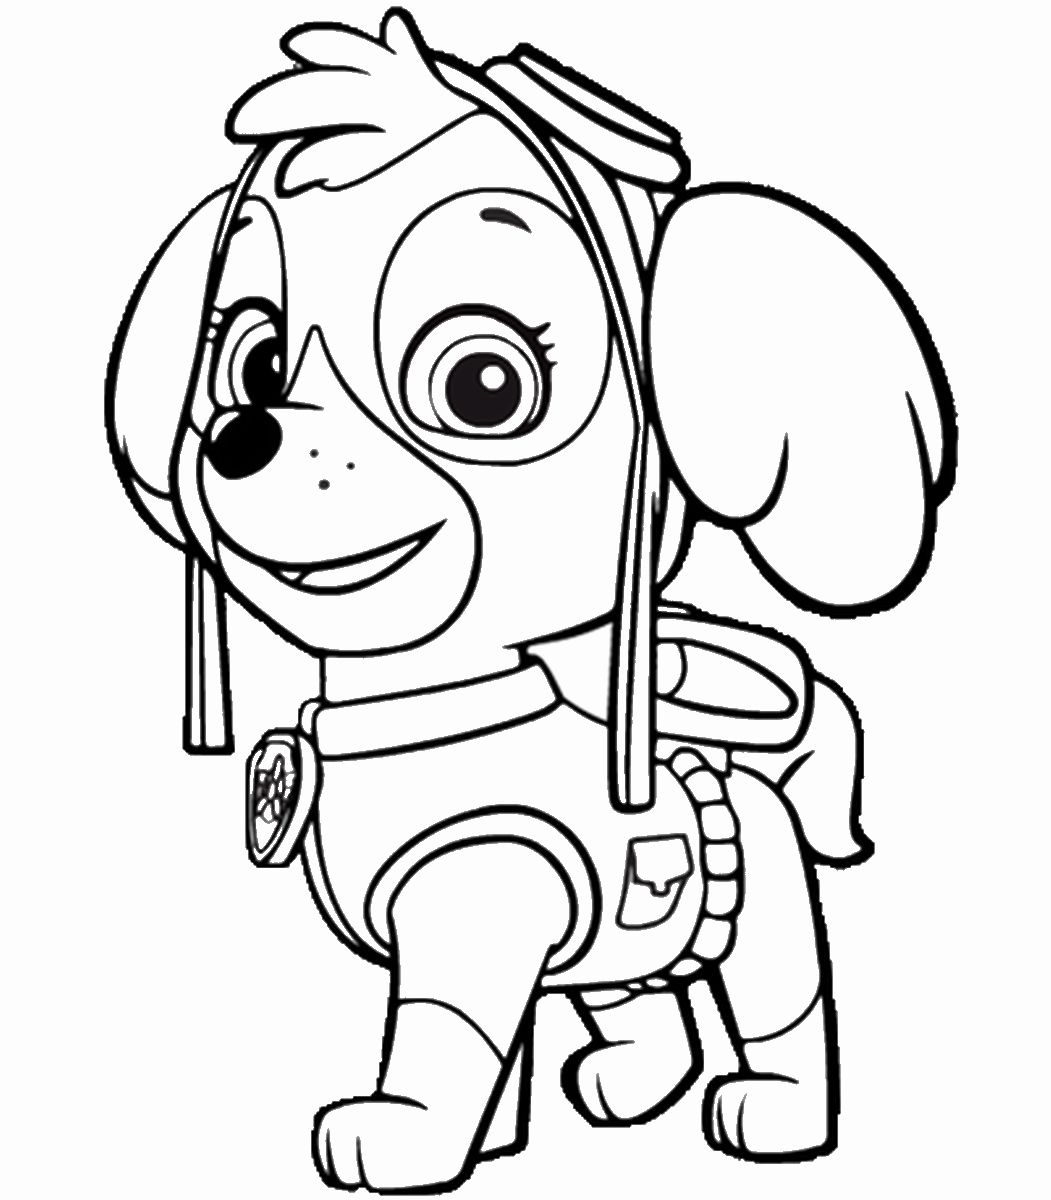 28 Chase Paw Patrol Coloring Page in 2020 (With images ...